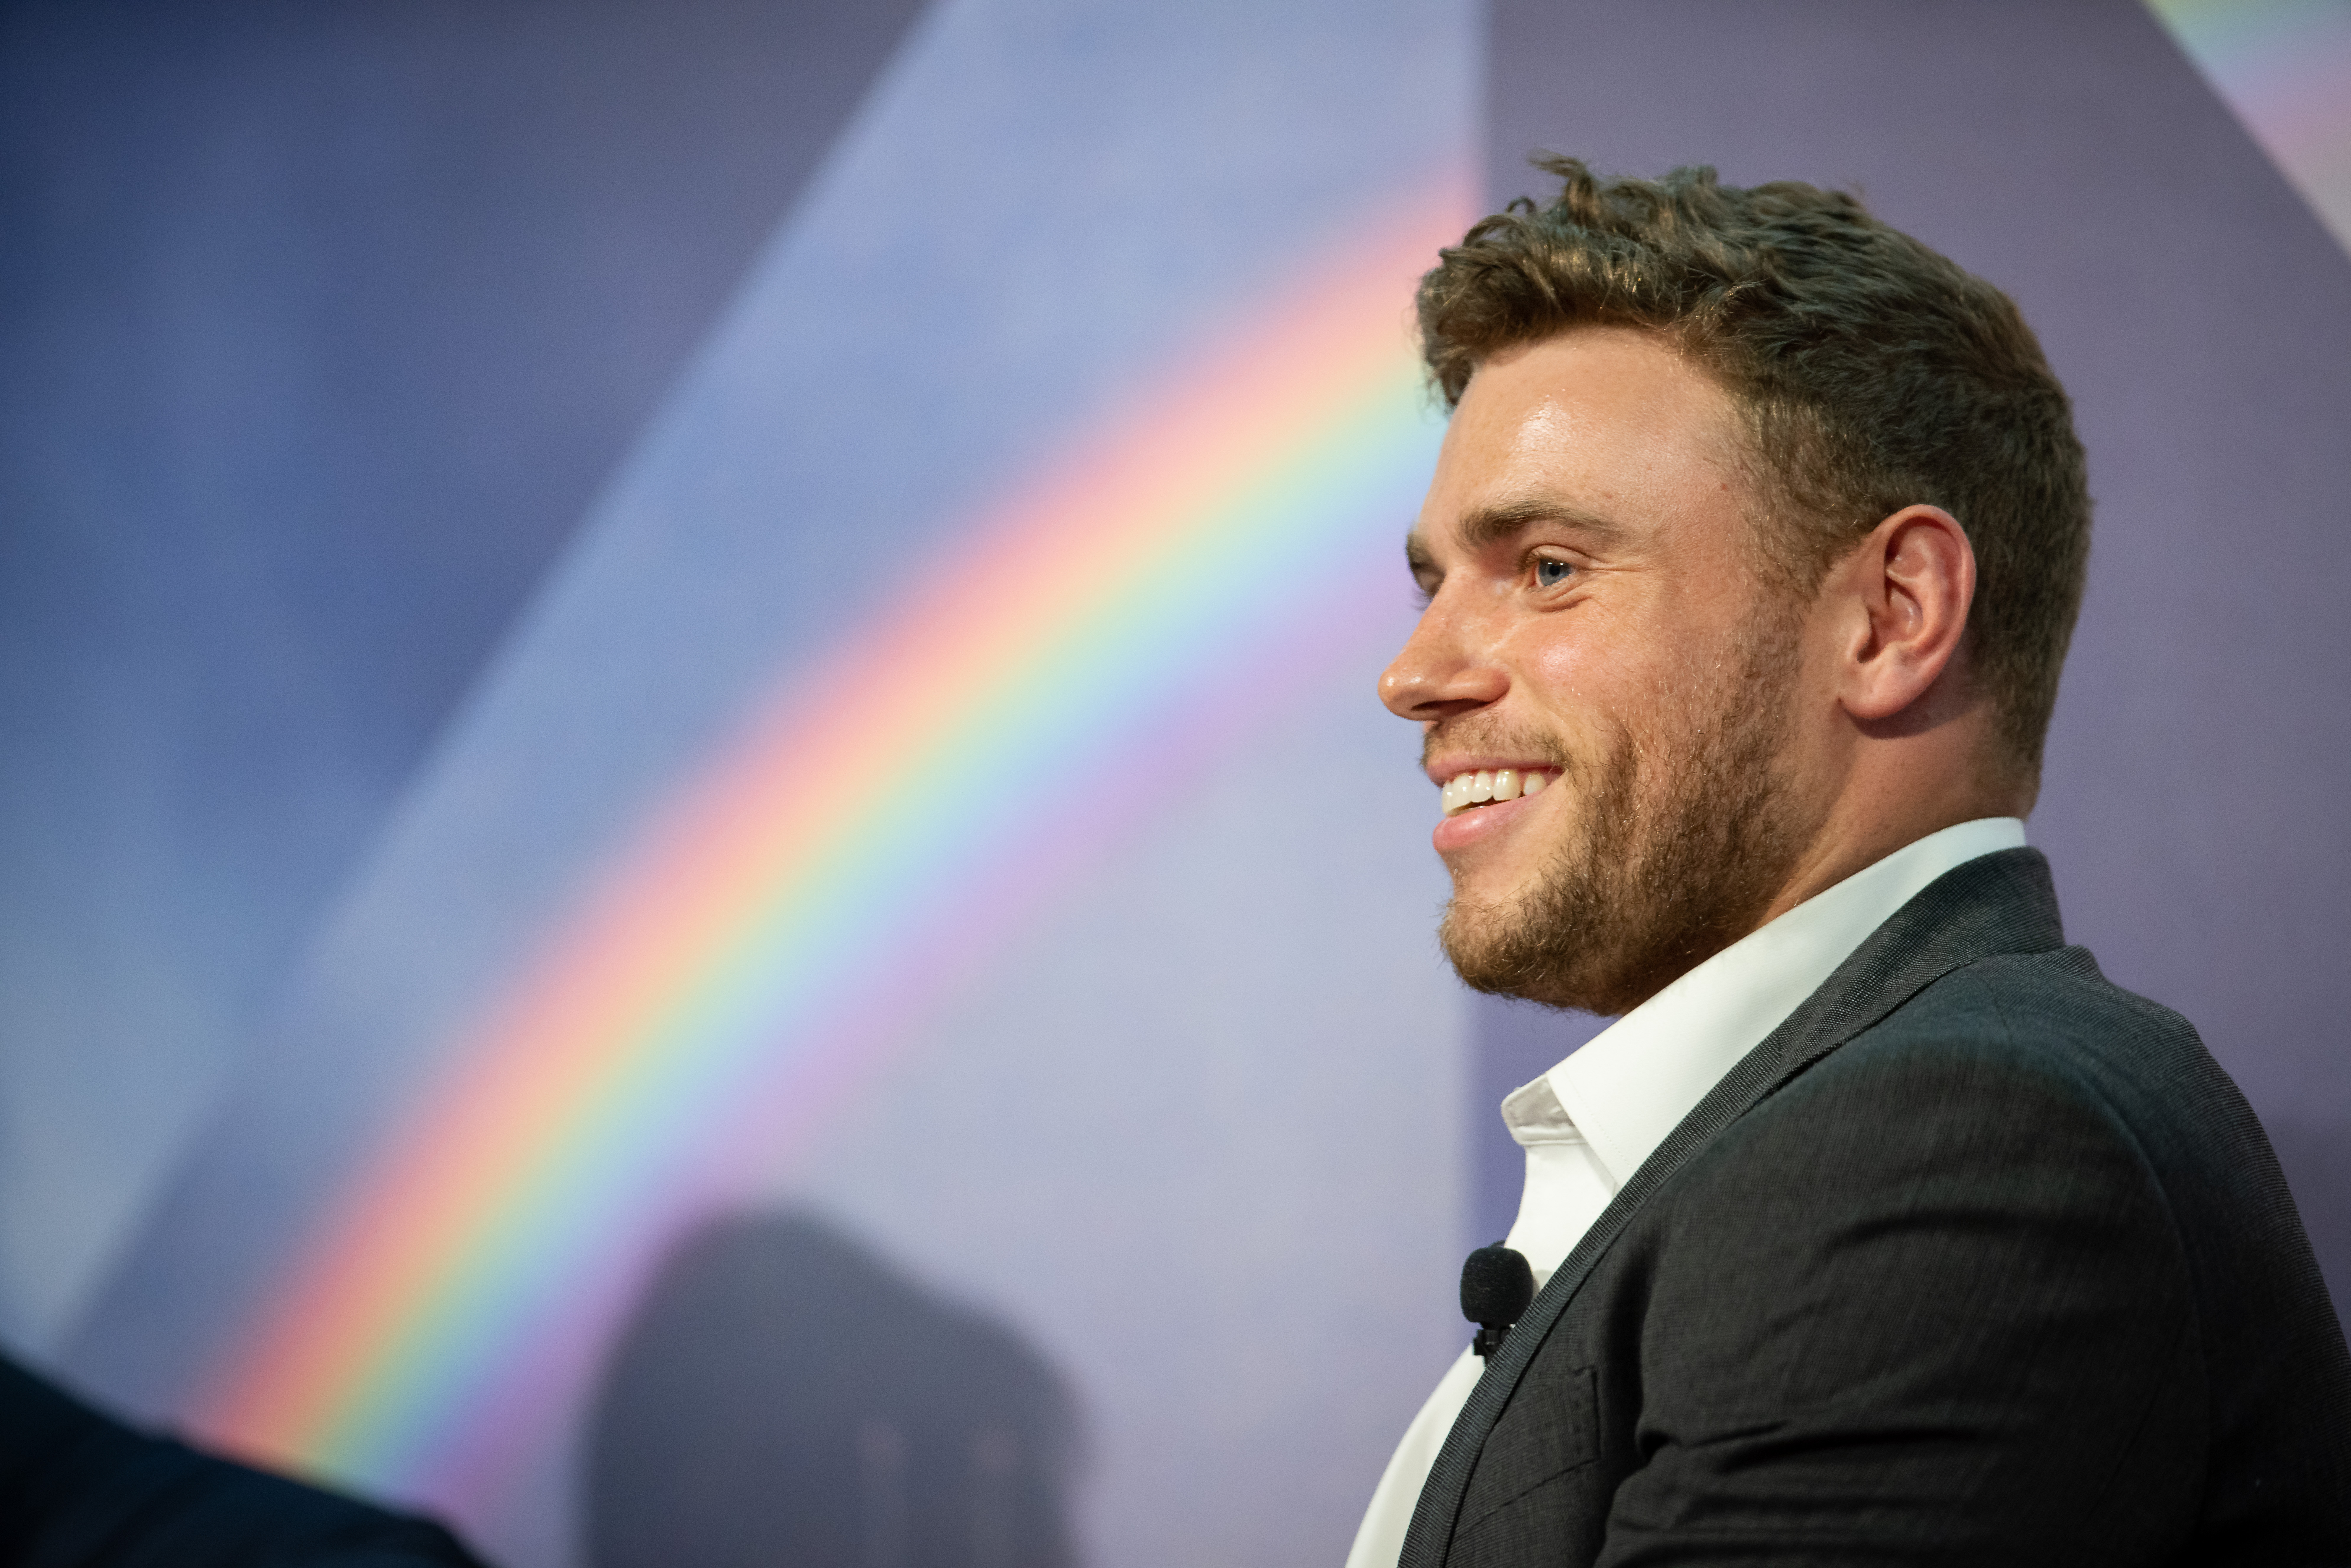 LGBT+ Olympic medalist Gus Kenworthy and Todd Sears have a conversation about visible leadership 1